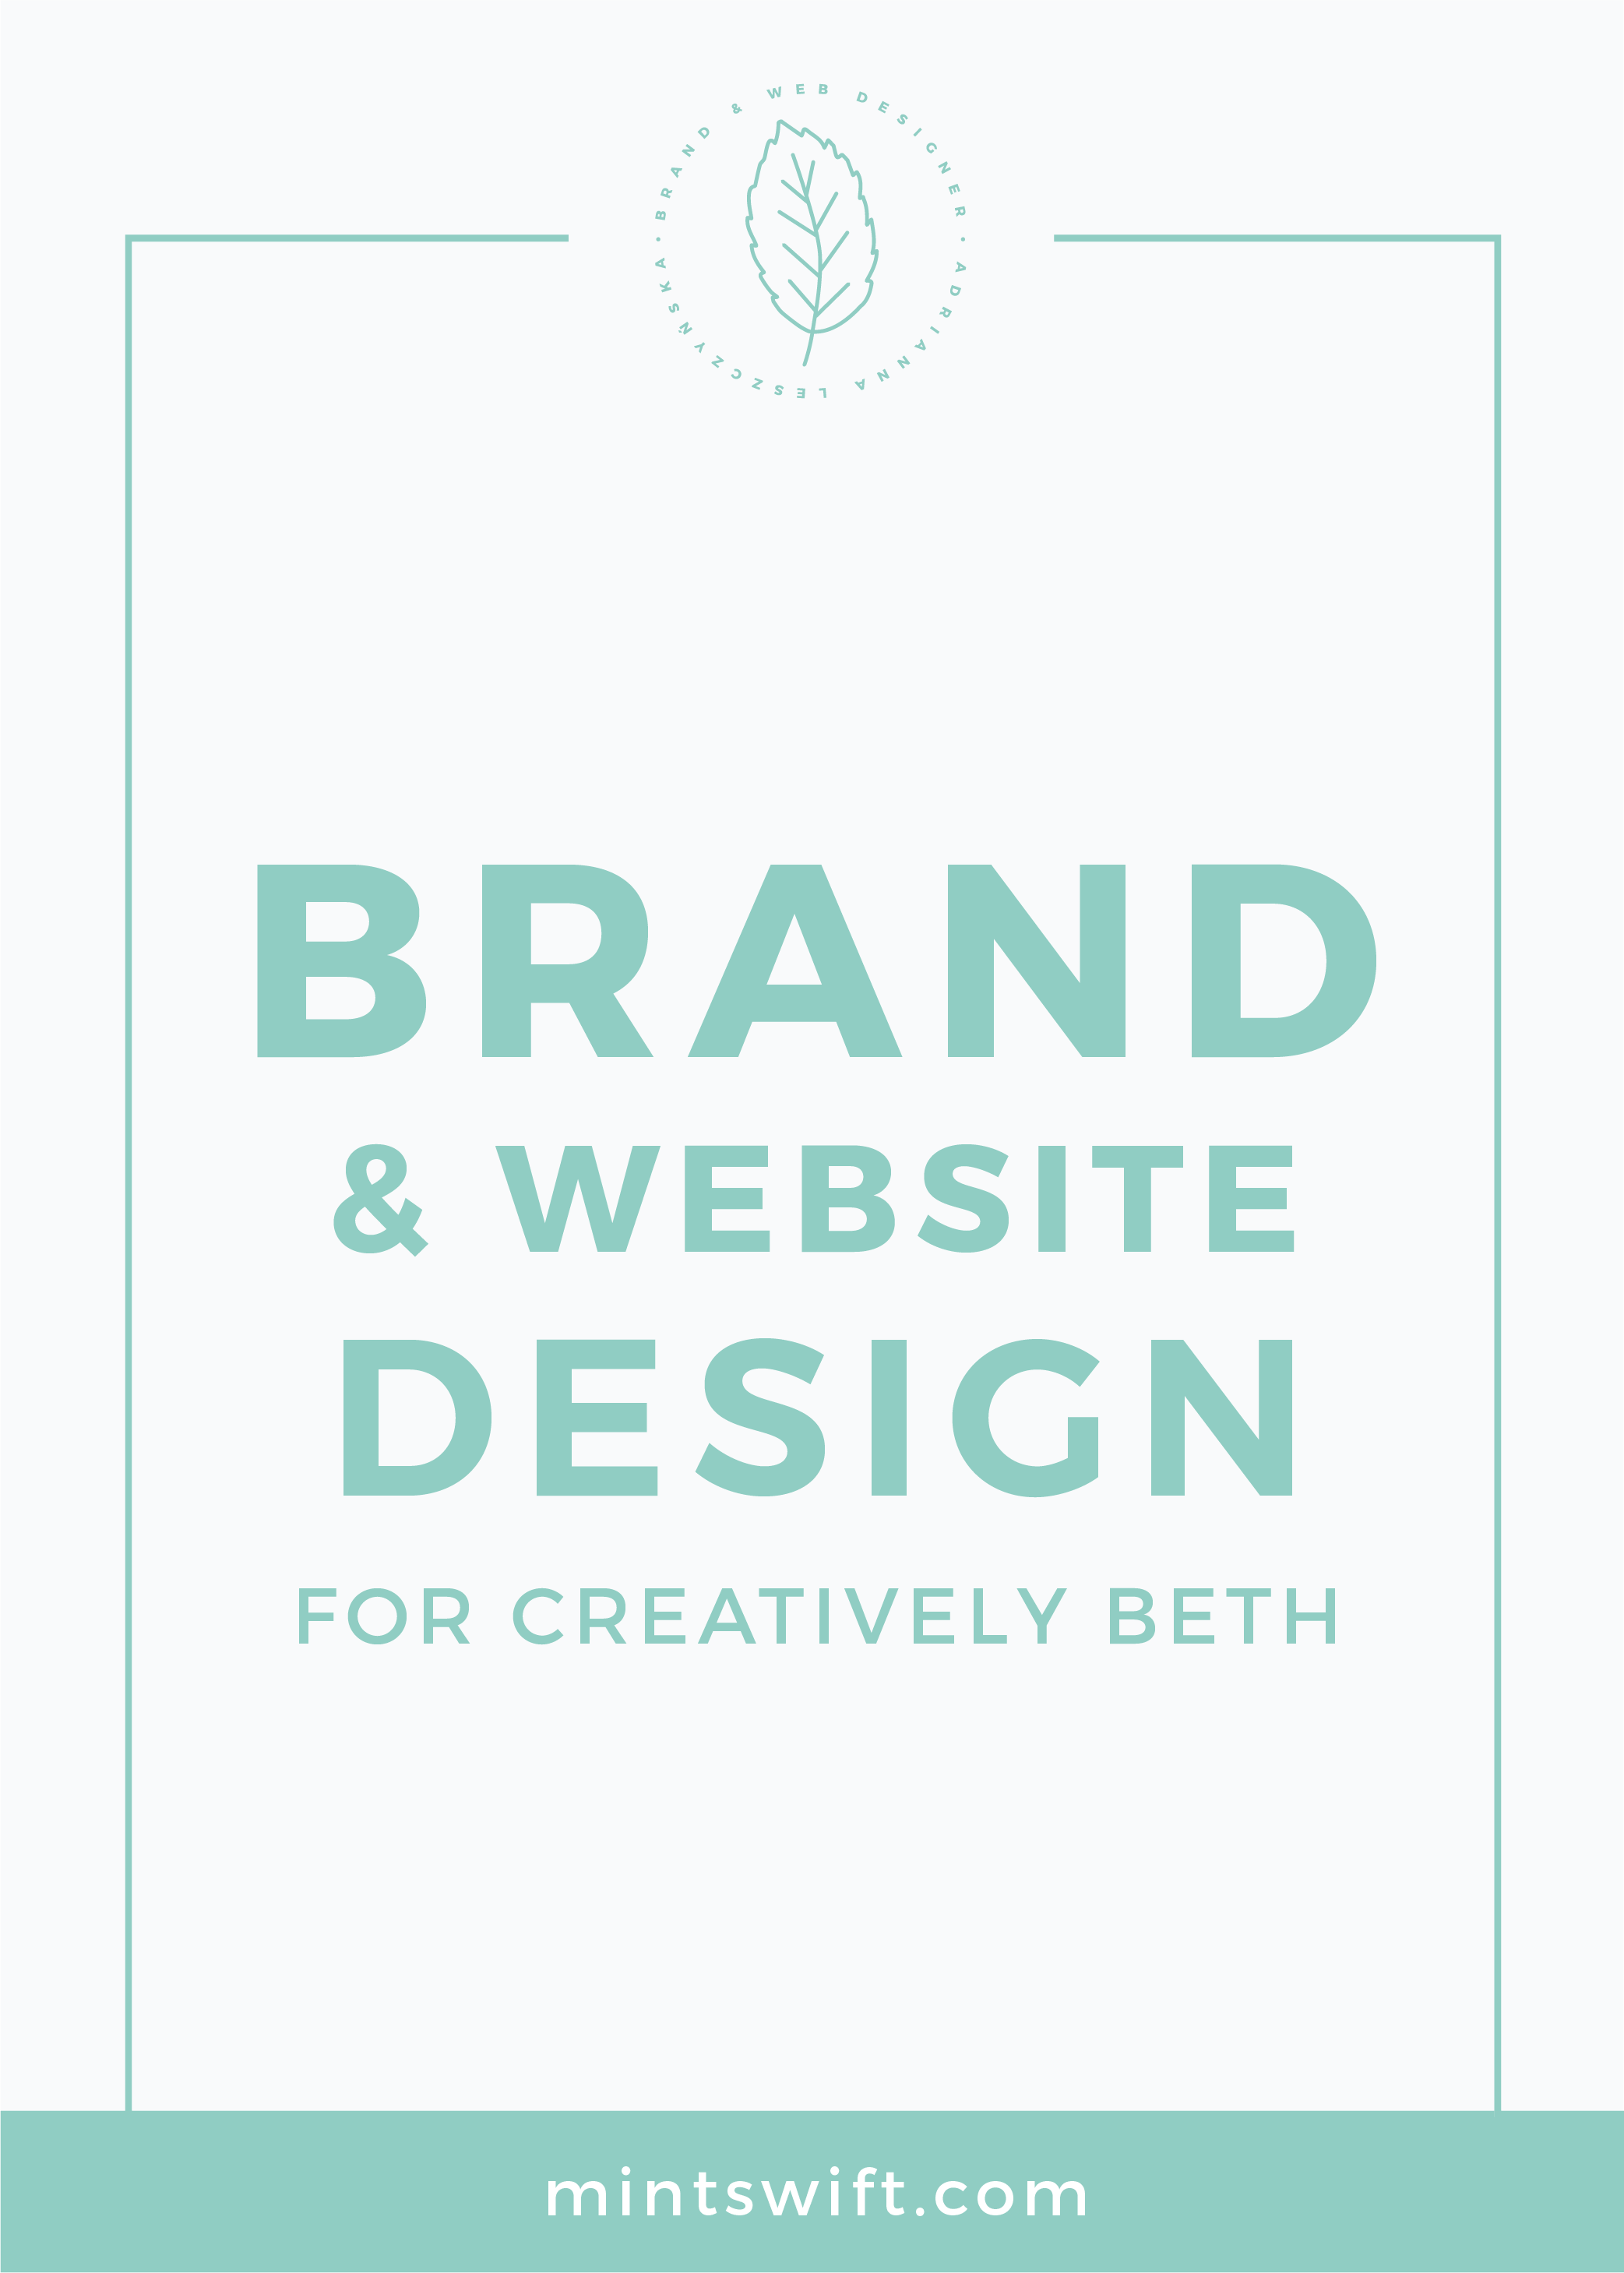 Brand & Website Design for Creatively Beth MintSwift